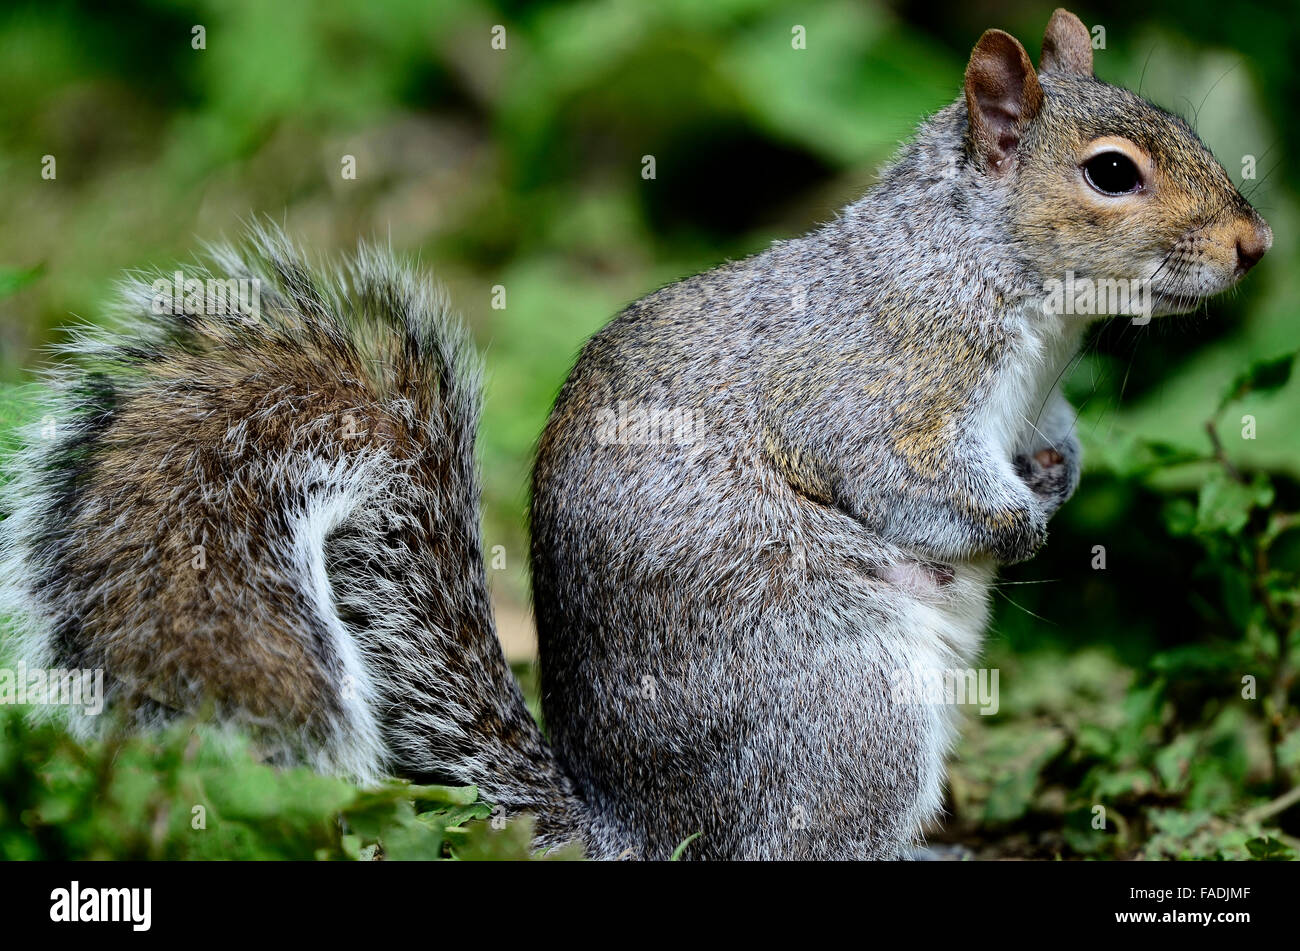 Grey squirrel sitting down. UK - Stock Image